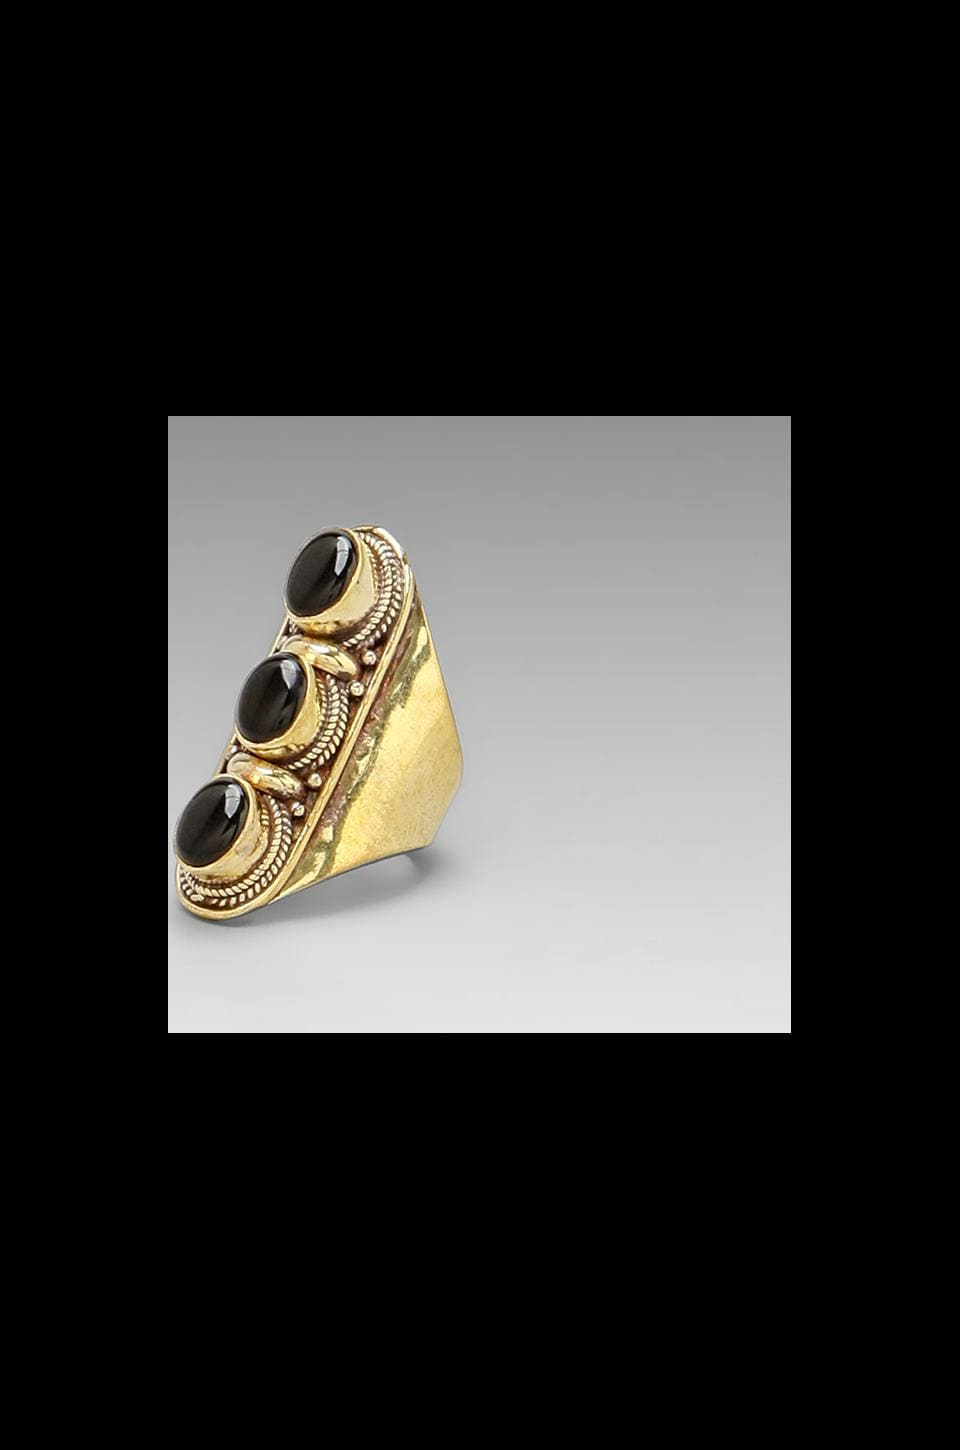 Vanessa Mooney DEPRECATED Vanessa Mooney The Conquered Ring in Onyx/Brass